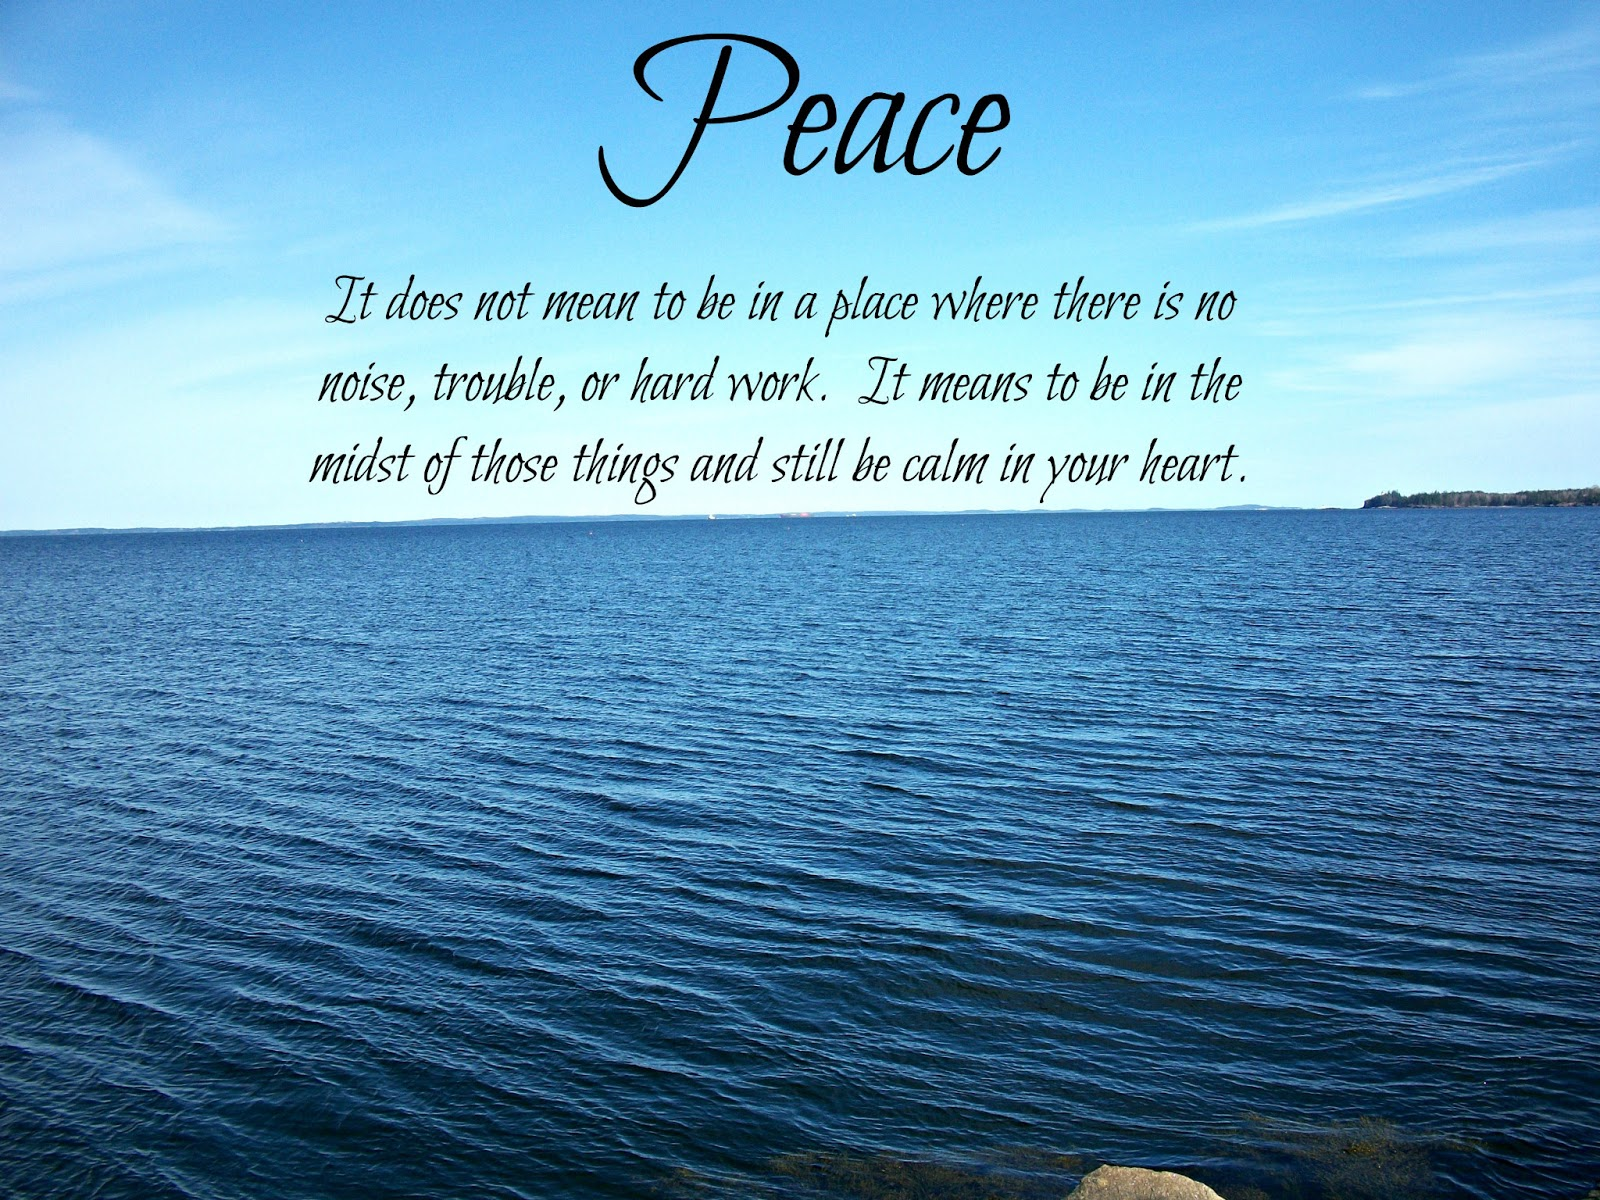 Peace Quotes And Sayings Quotesgram: Ocean Peace Quotes. QuotesGram